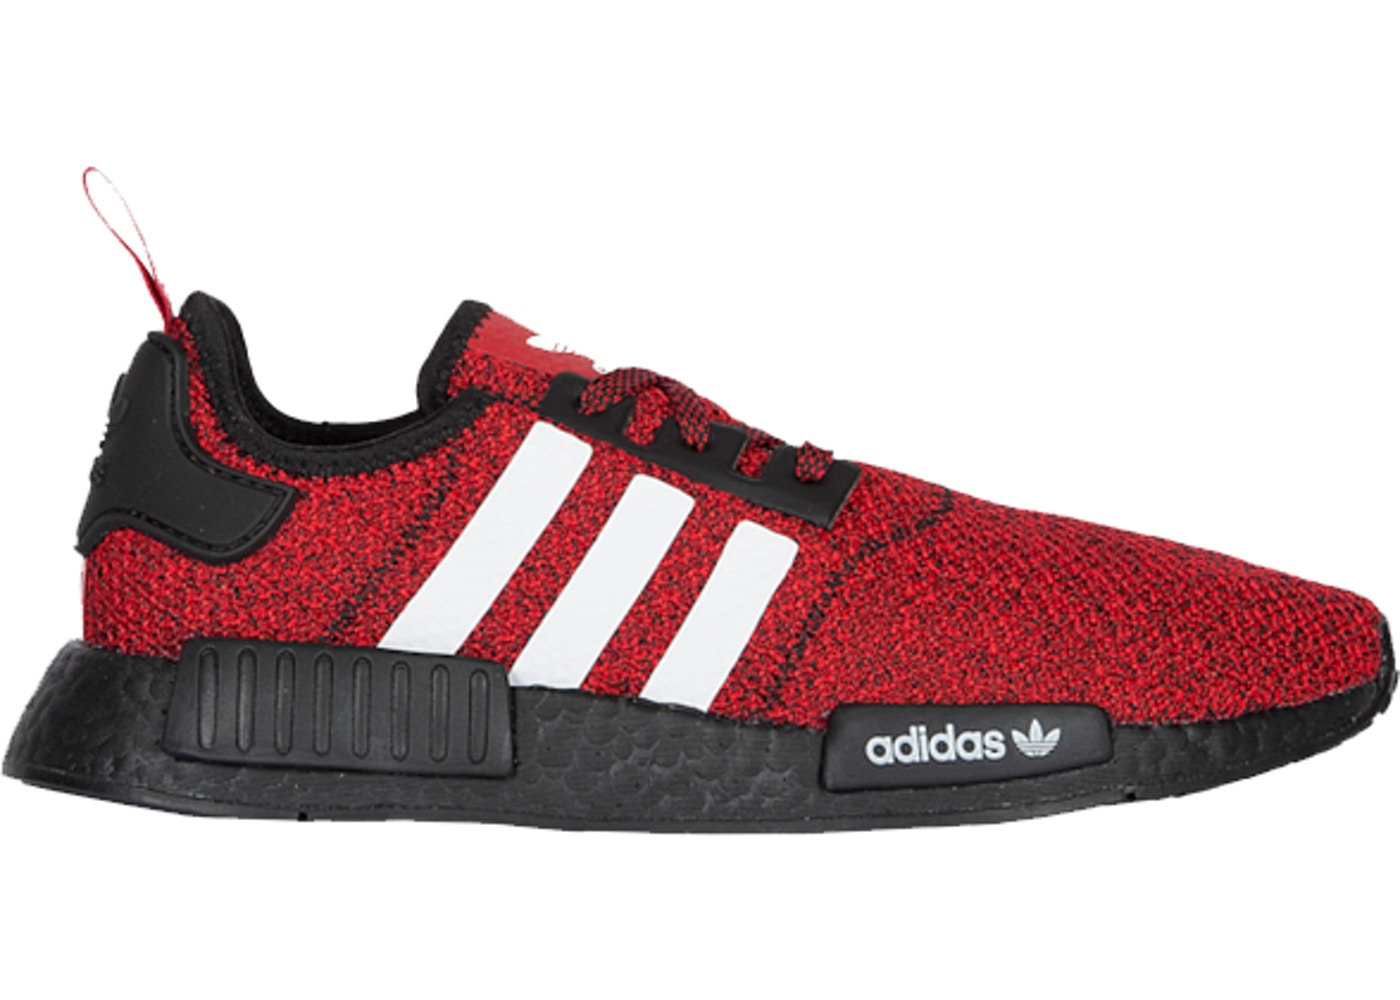 Magistrado jurado Altitud  adidas NMD R1 Carbon Red White Black - EF1241